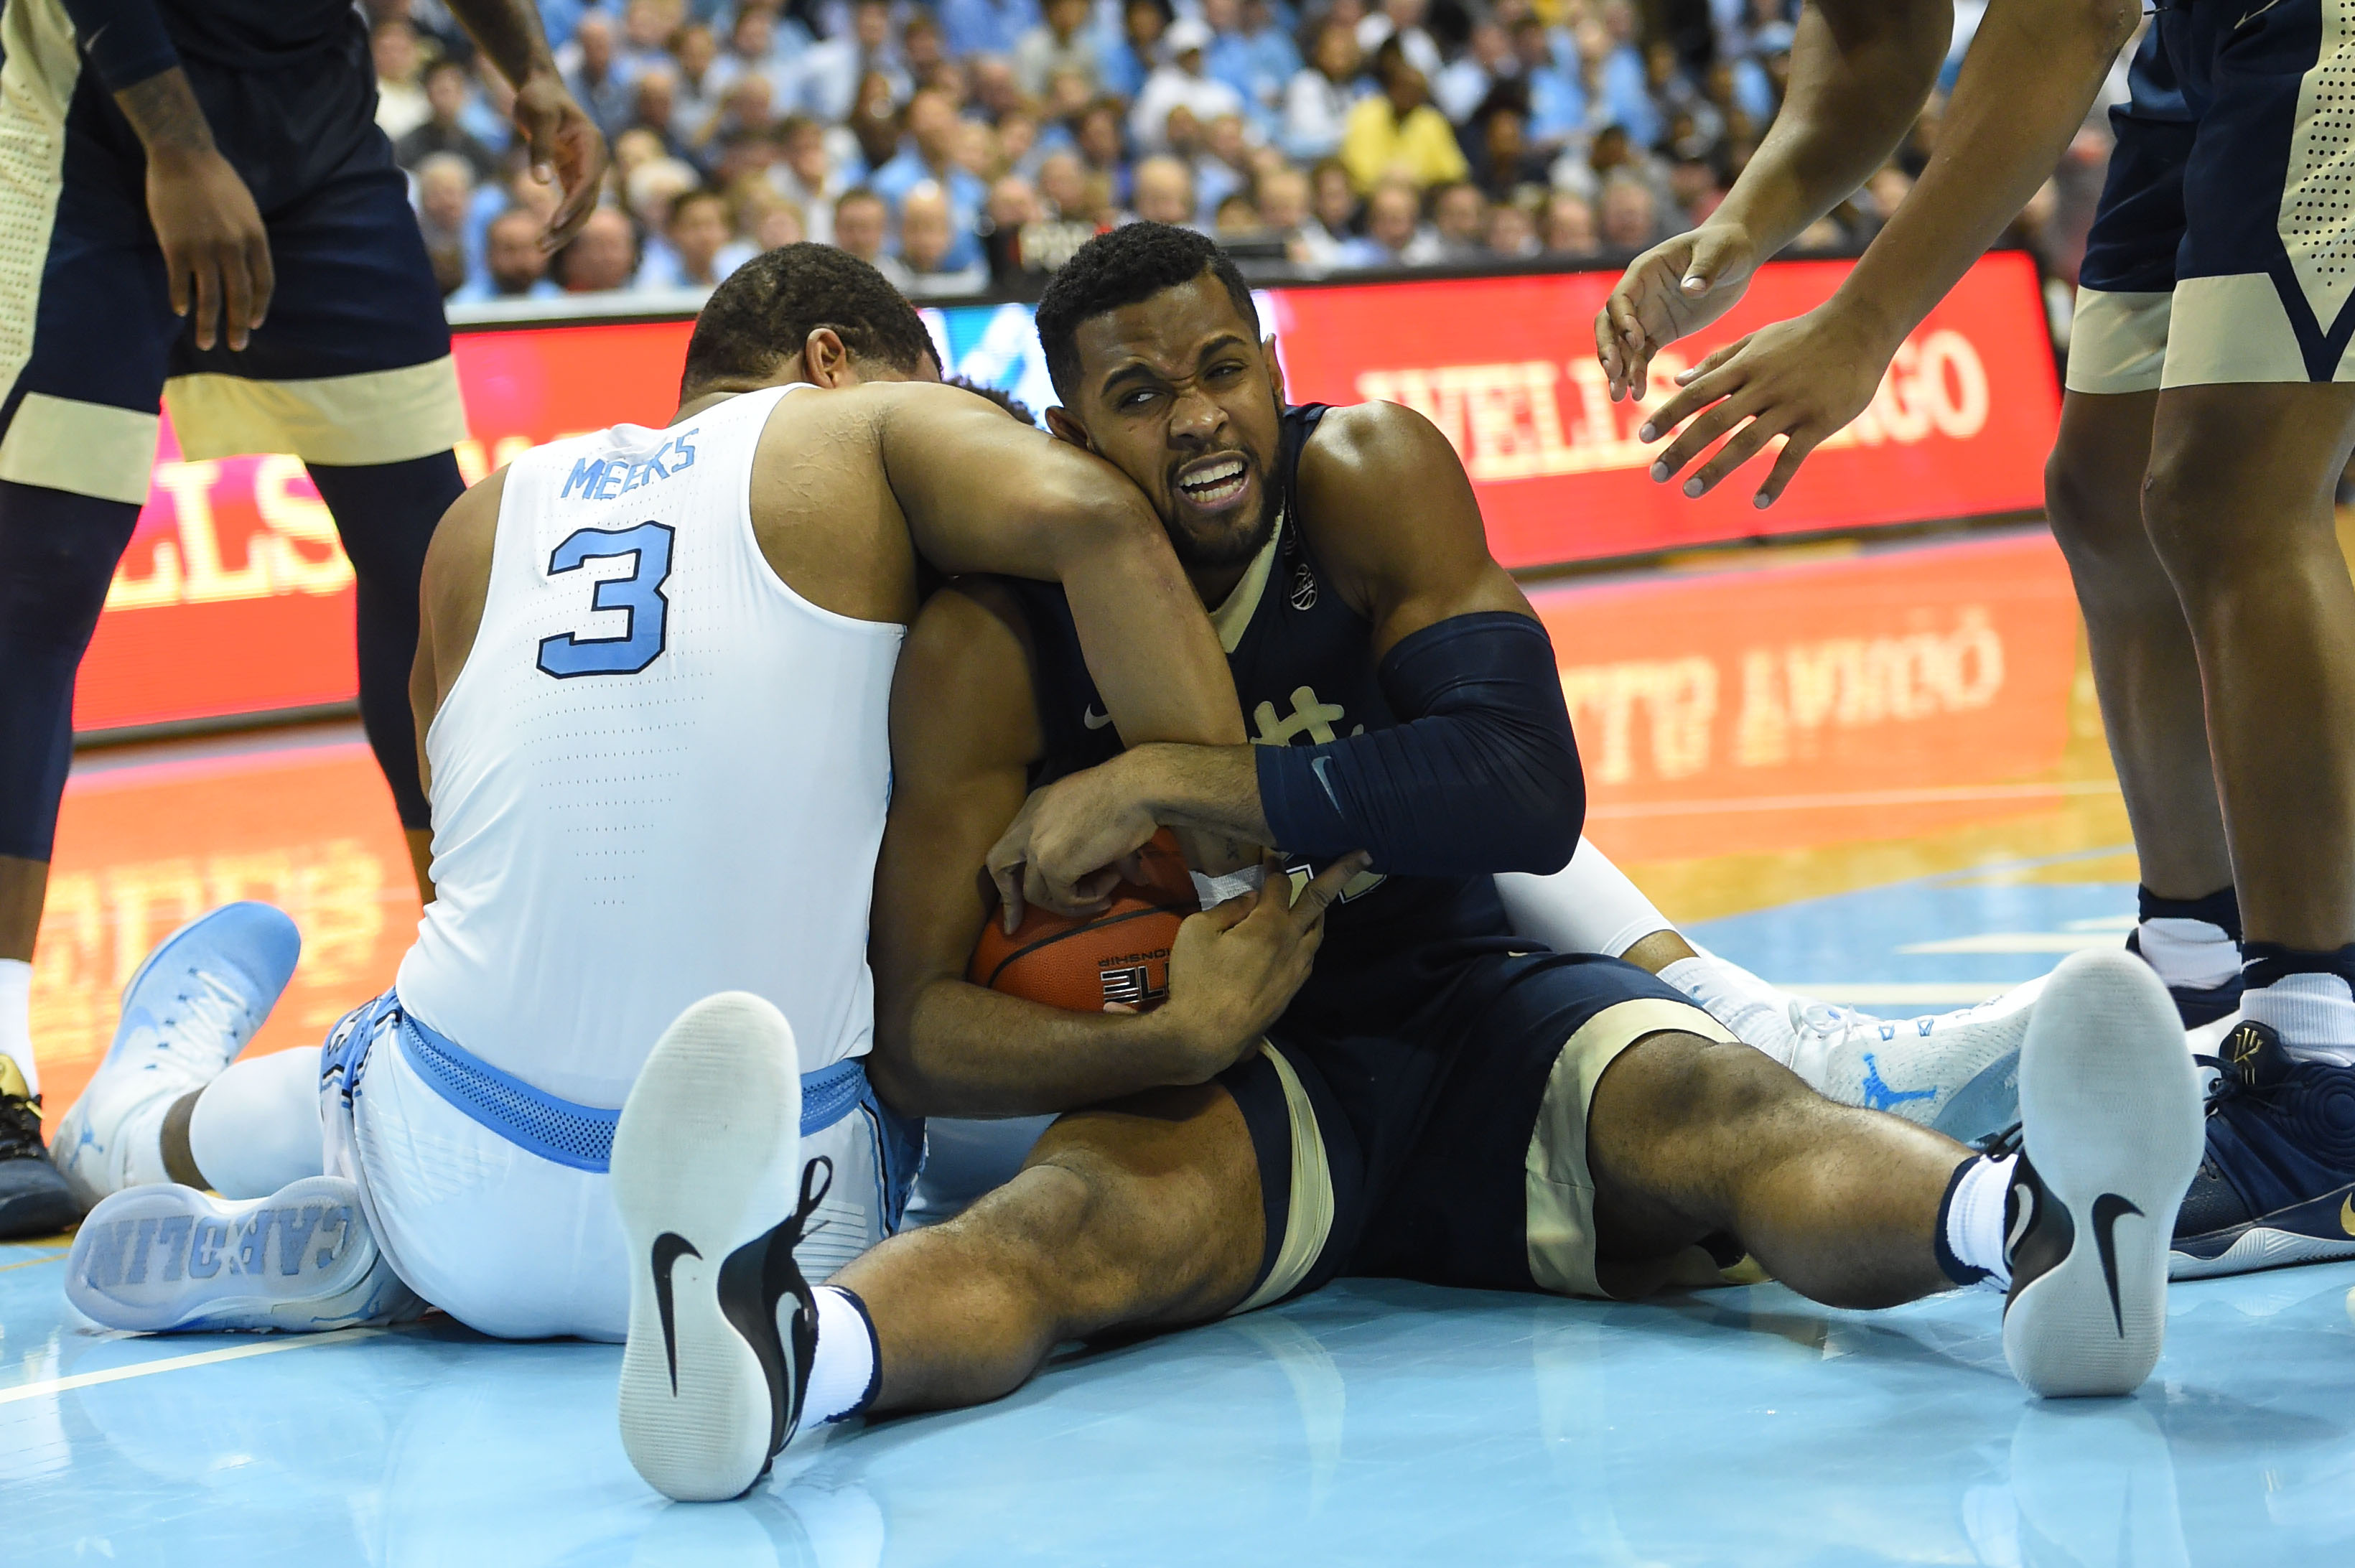 Jan 31, 2017; Chapel Hill, NC, USA; North Carolina Tar Heels forward Kennedy Meeks (3) and Pittsburgh Panthers forward Sheldon Jeter (21) fight for the ball in the second half. The Tar Heels defeated the Panthers 80-78 at Dean E. Smith Center. Mandatory Credit: Bob Donnan-USA TODAY Sports